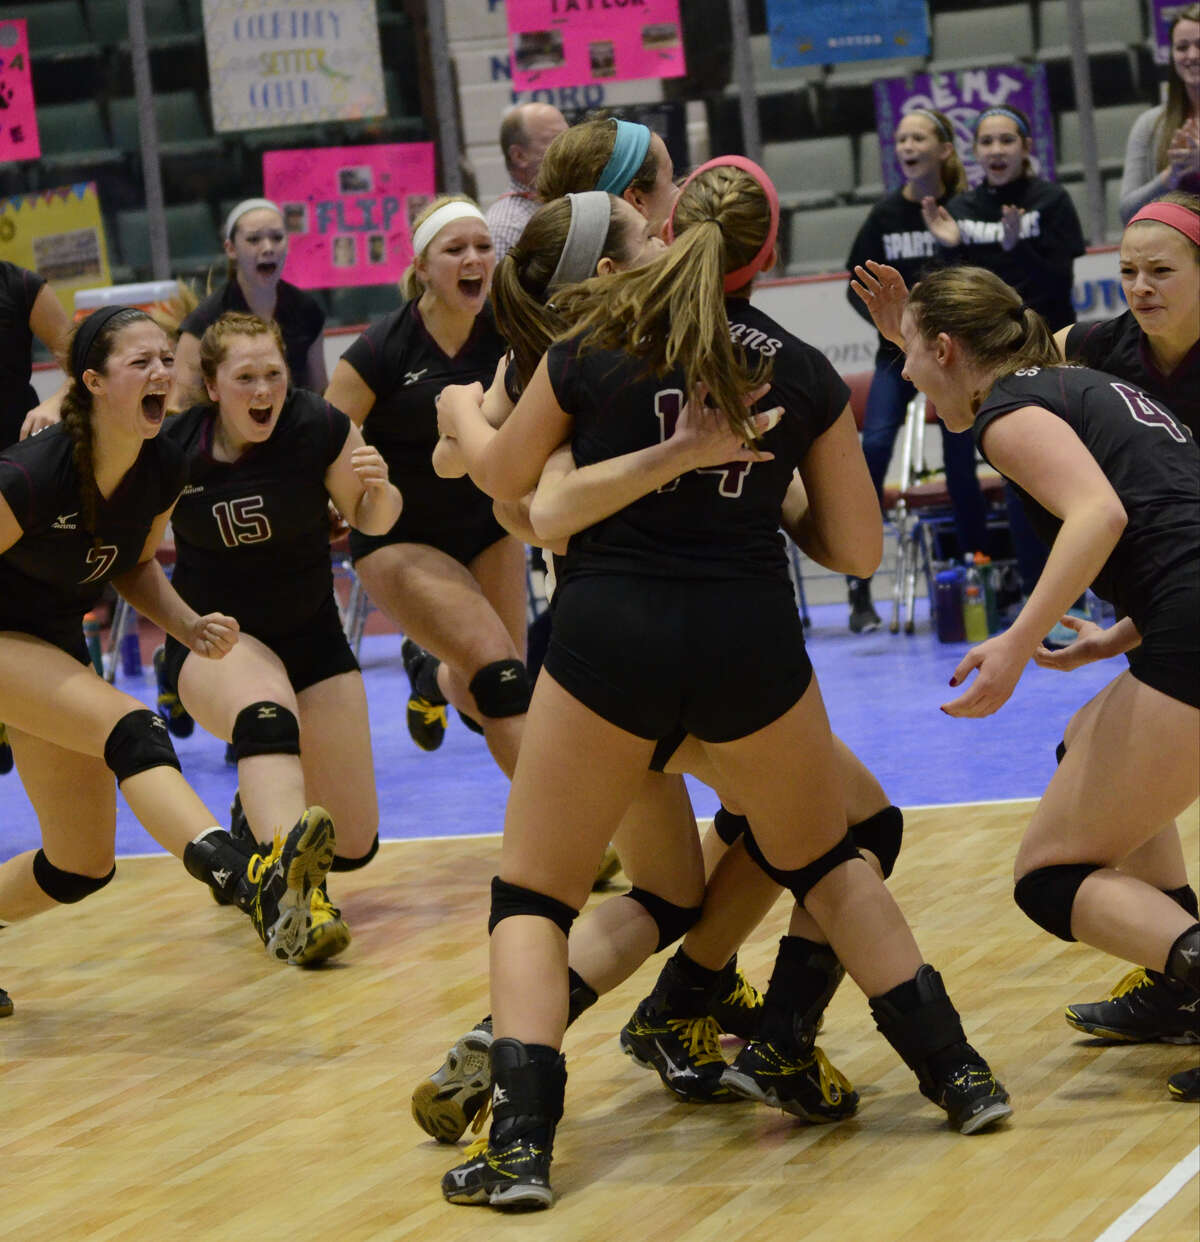 Burnt Hills-Ballston Lake volleyball players run onto the court after winning the final set in the Class A State Volleyball Championship against Walter Panas, Sunday, Nov. 22, 2015, in Glens Falls, N.Y. (Jenn March/Special to the Times Union)